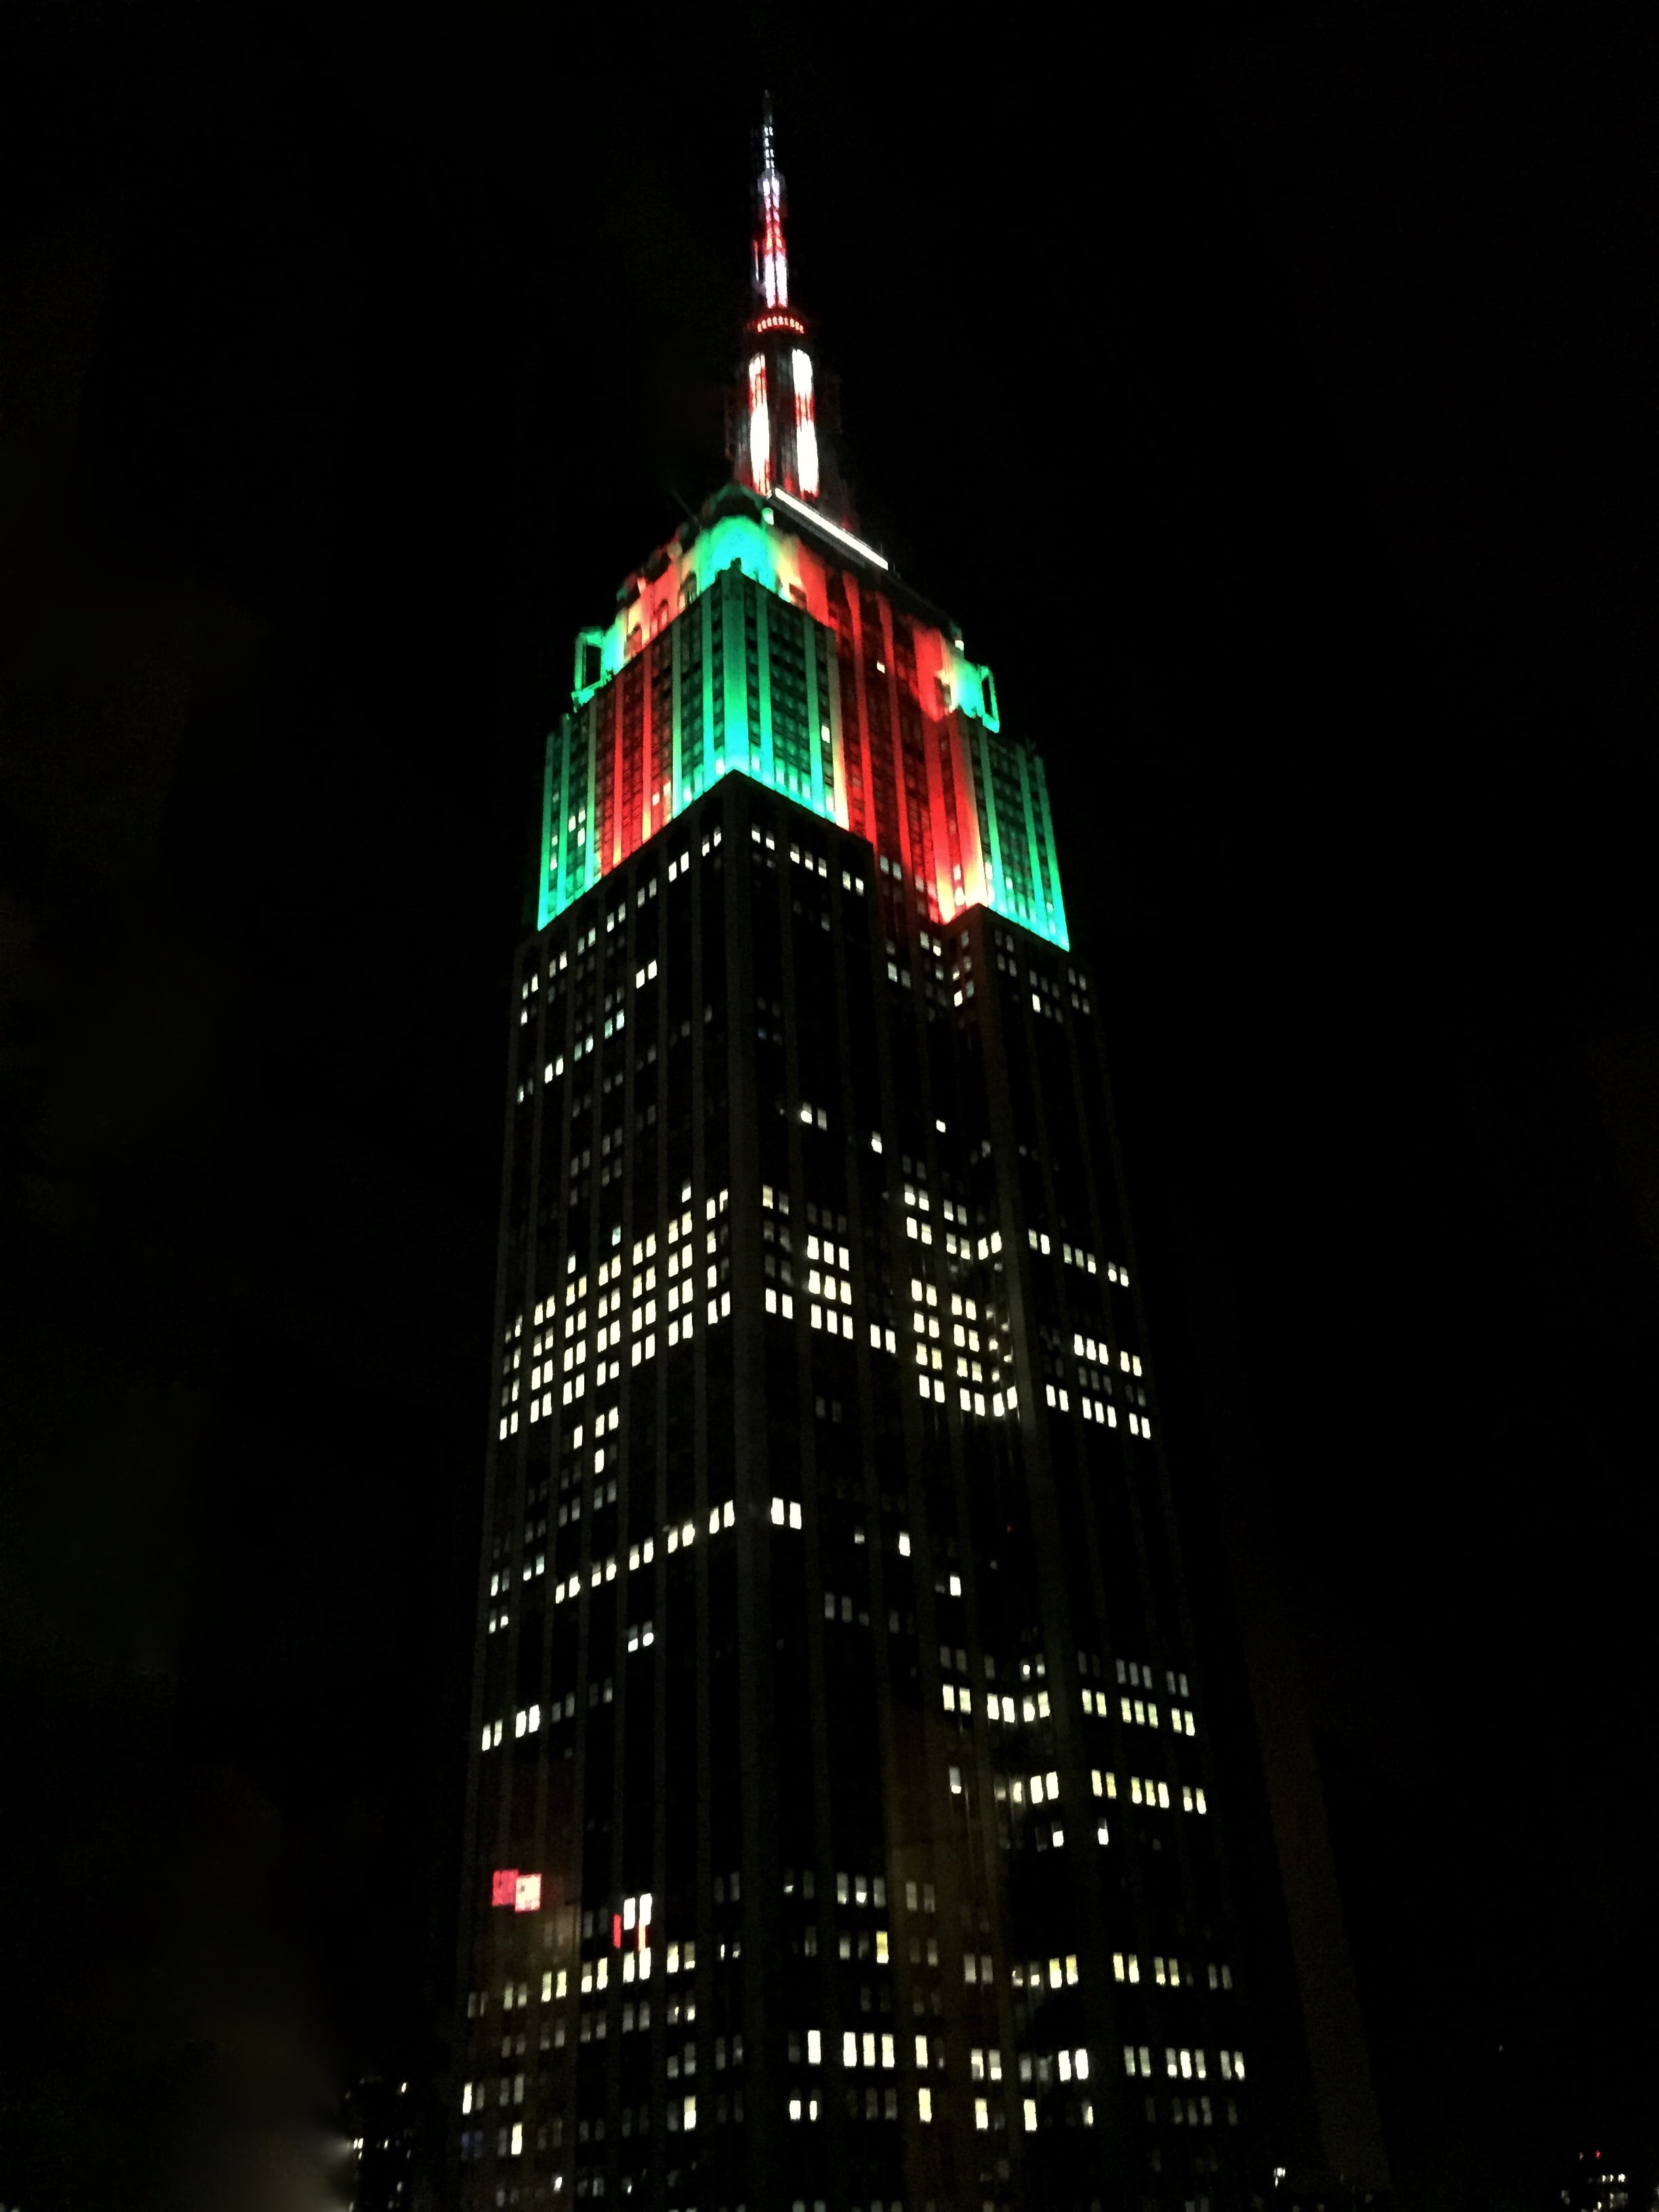 Empire State Building lit up in red and green.